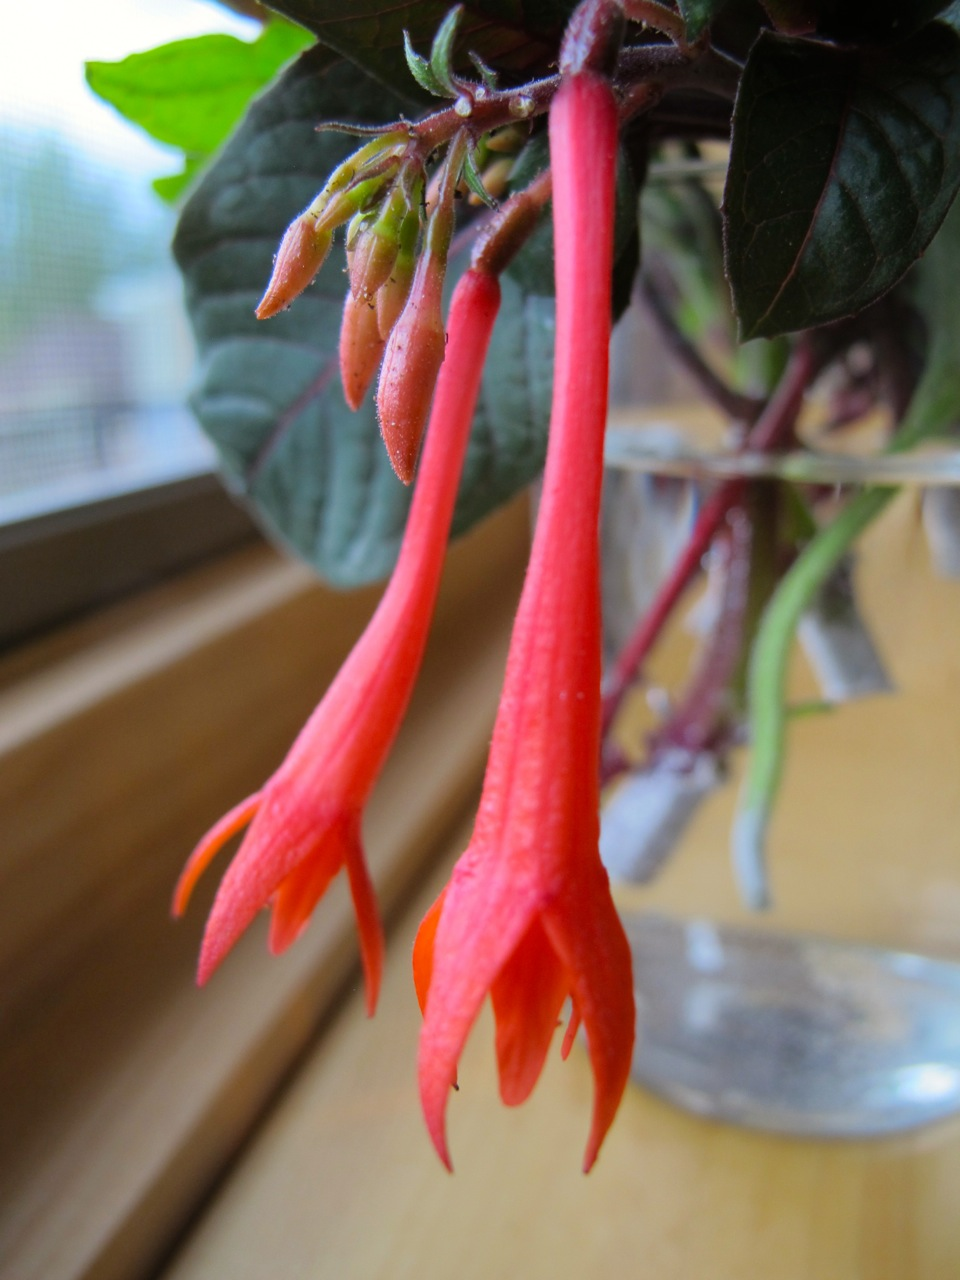 Fuchsia blooms I trimmed off to help the new plant get established.